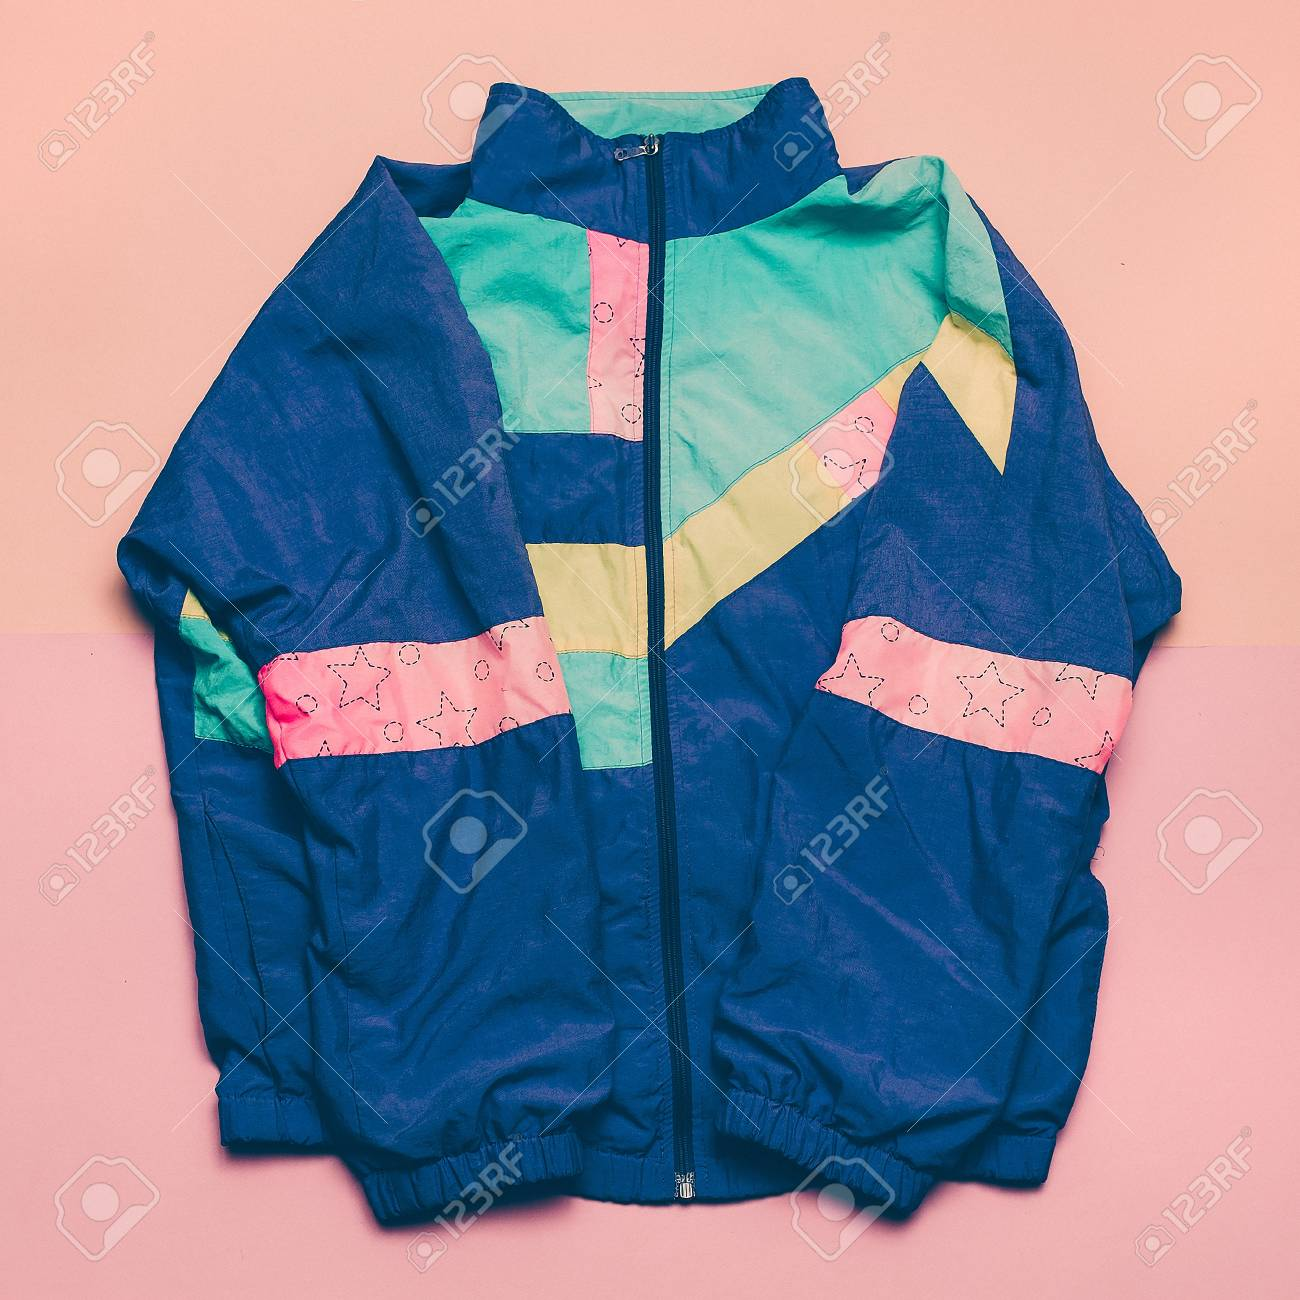 d804866a Vintage Sports Jacket Fashion Blogger Help Top View Stock Photo ...